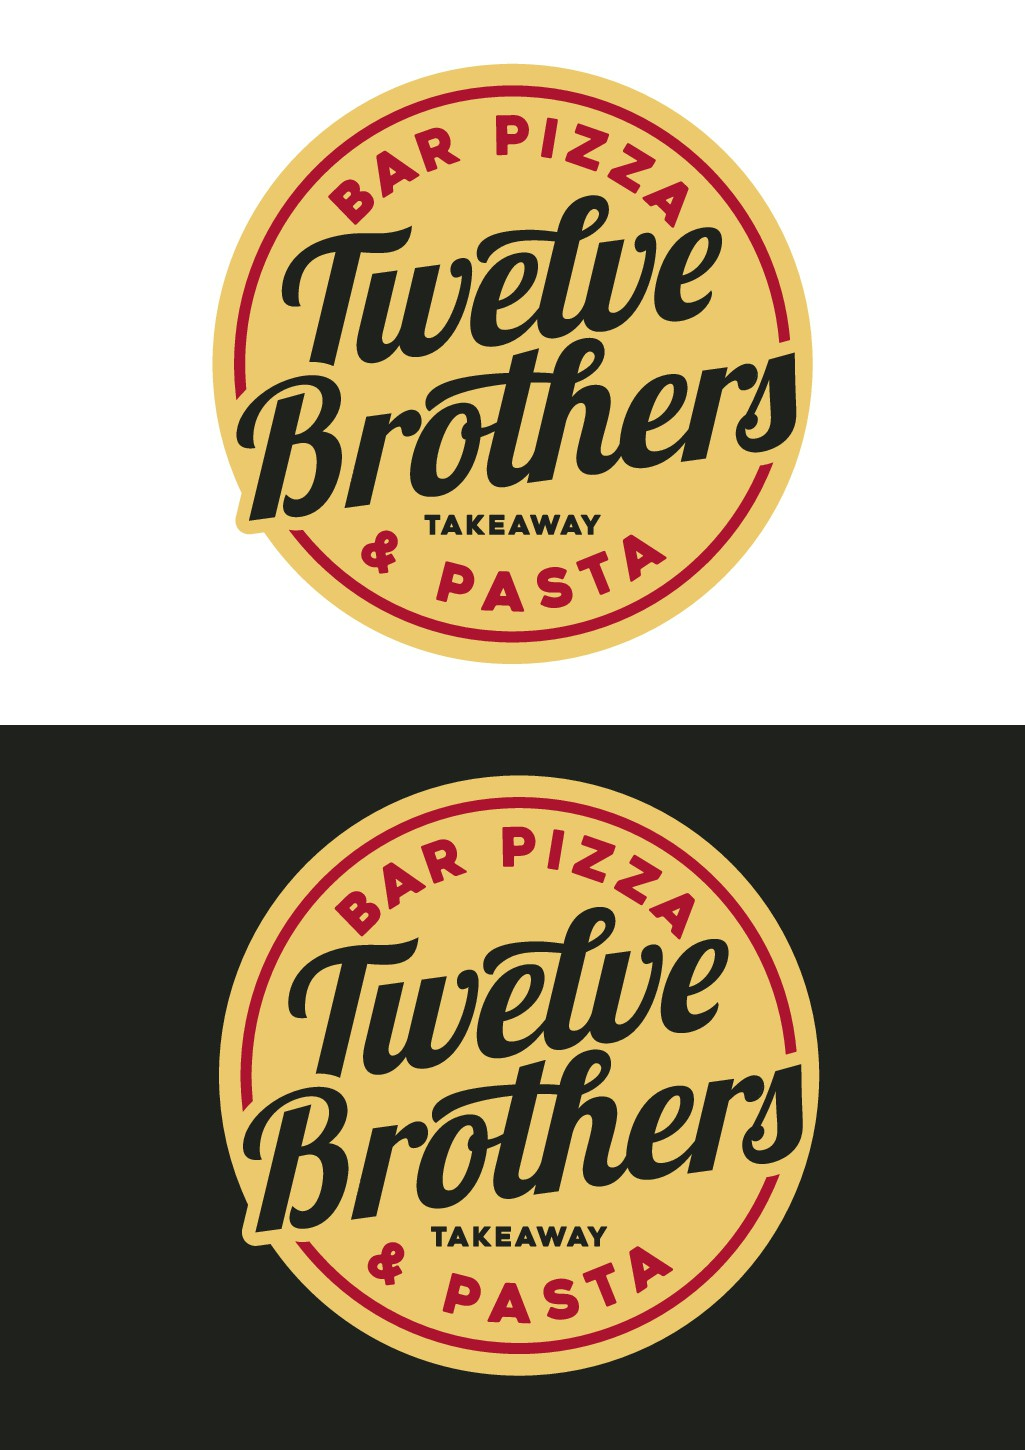 We are an all new pizza and pasta brand in Toronto looking for an engaging brand identity